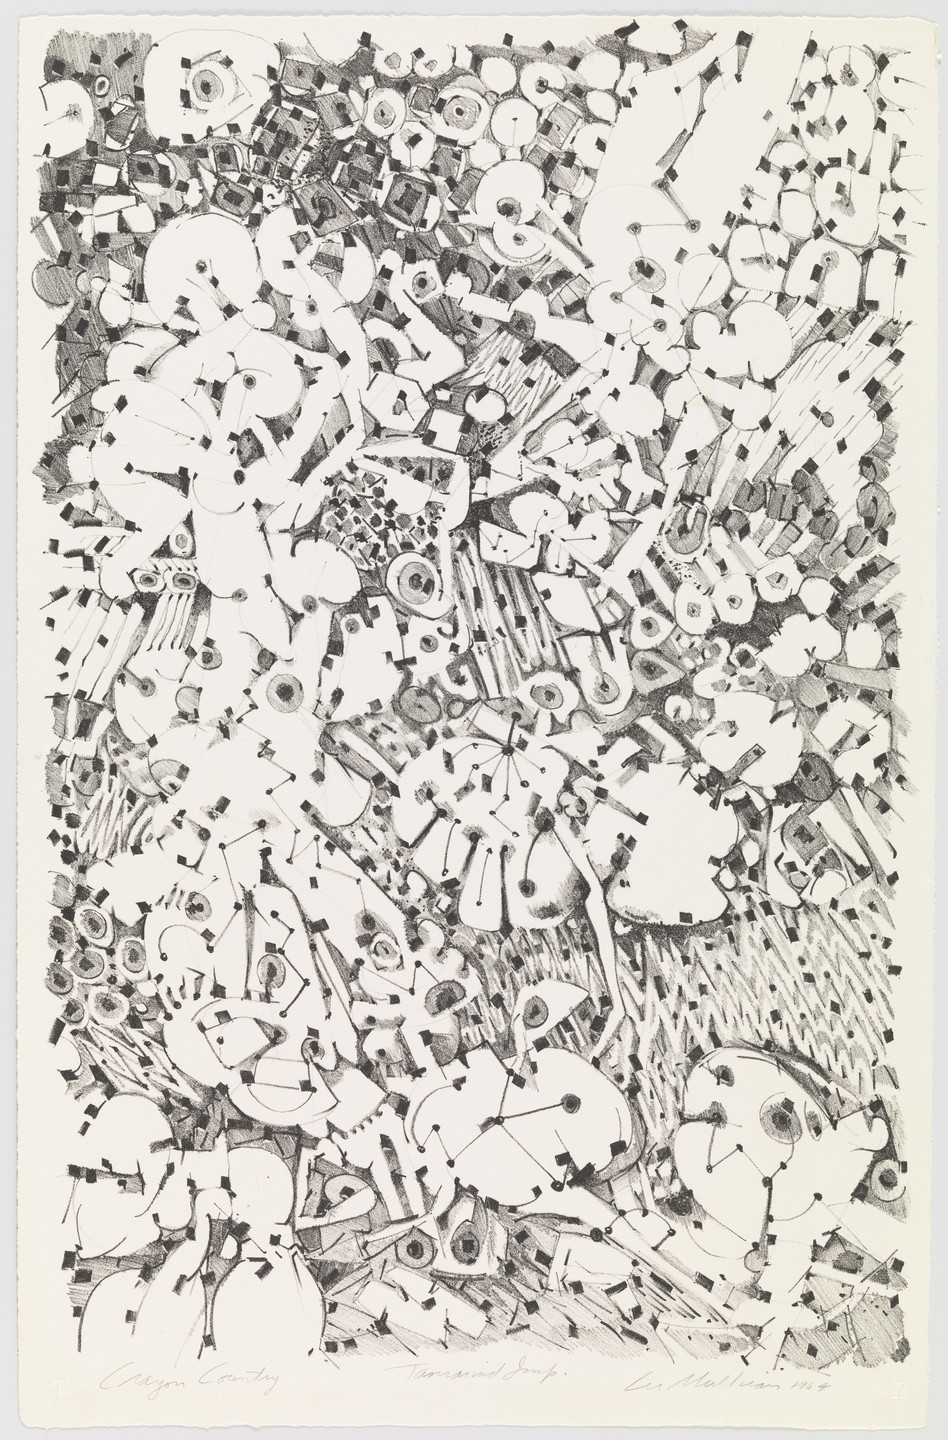 Lee Mullican. Crayon Country. 1964